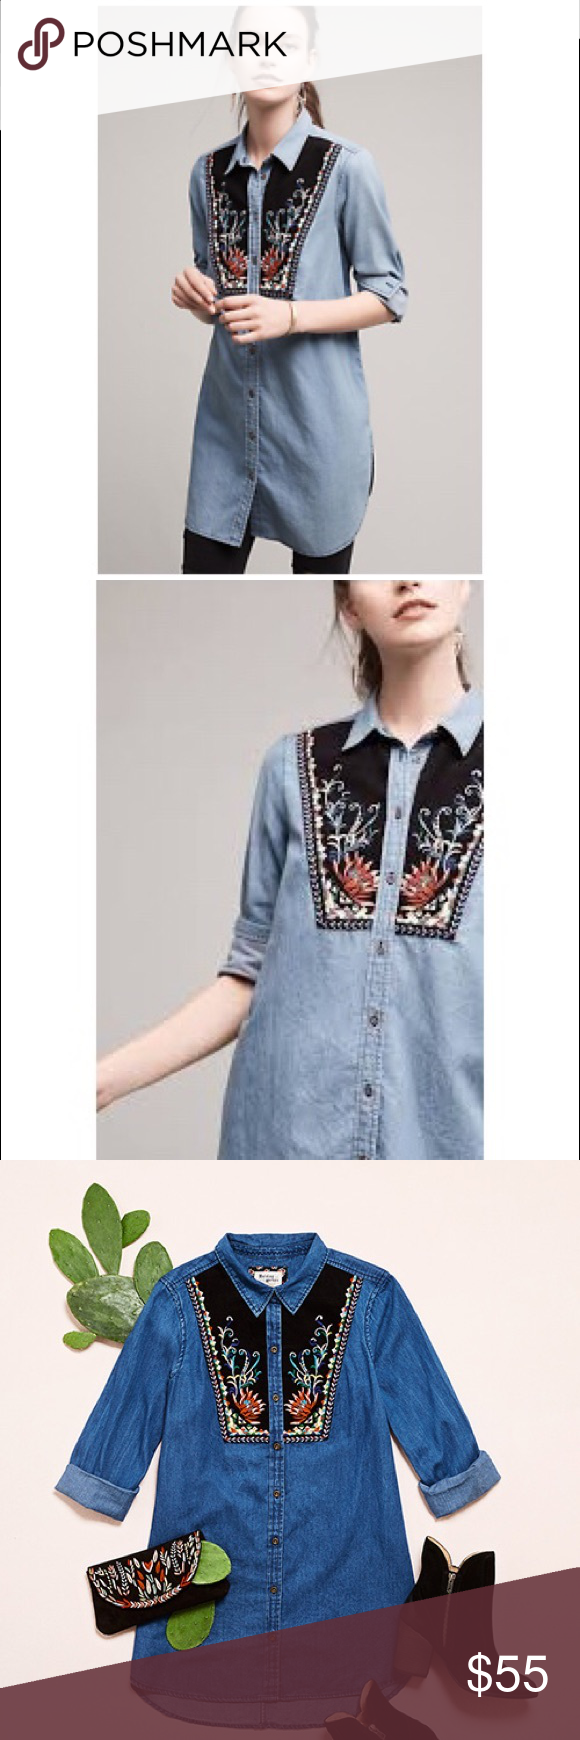 d875752bfc6 Anthropologie Holding Horses chambray Murelet Top Anthropologie Murelet  Chambray Tunic by Holding Horses Worn a few